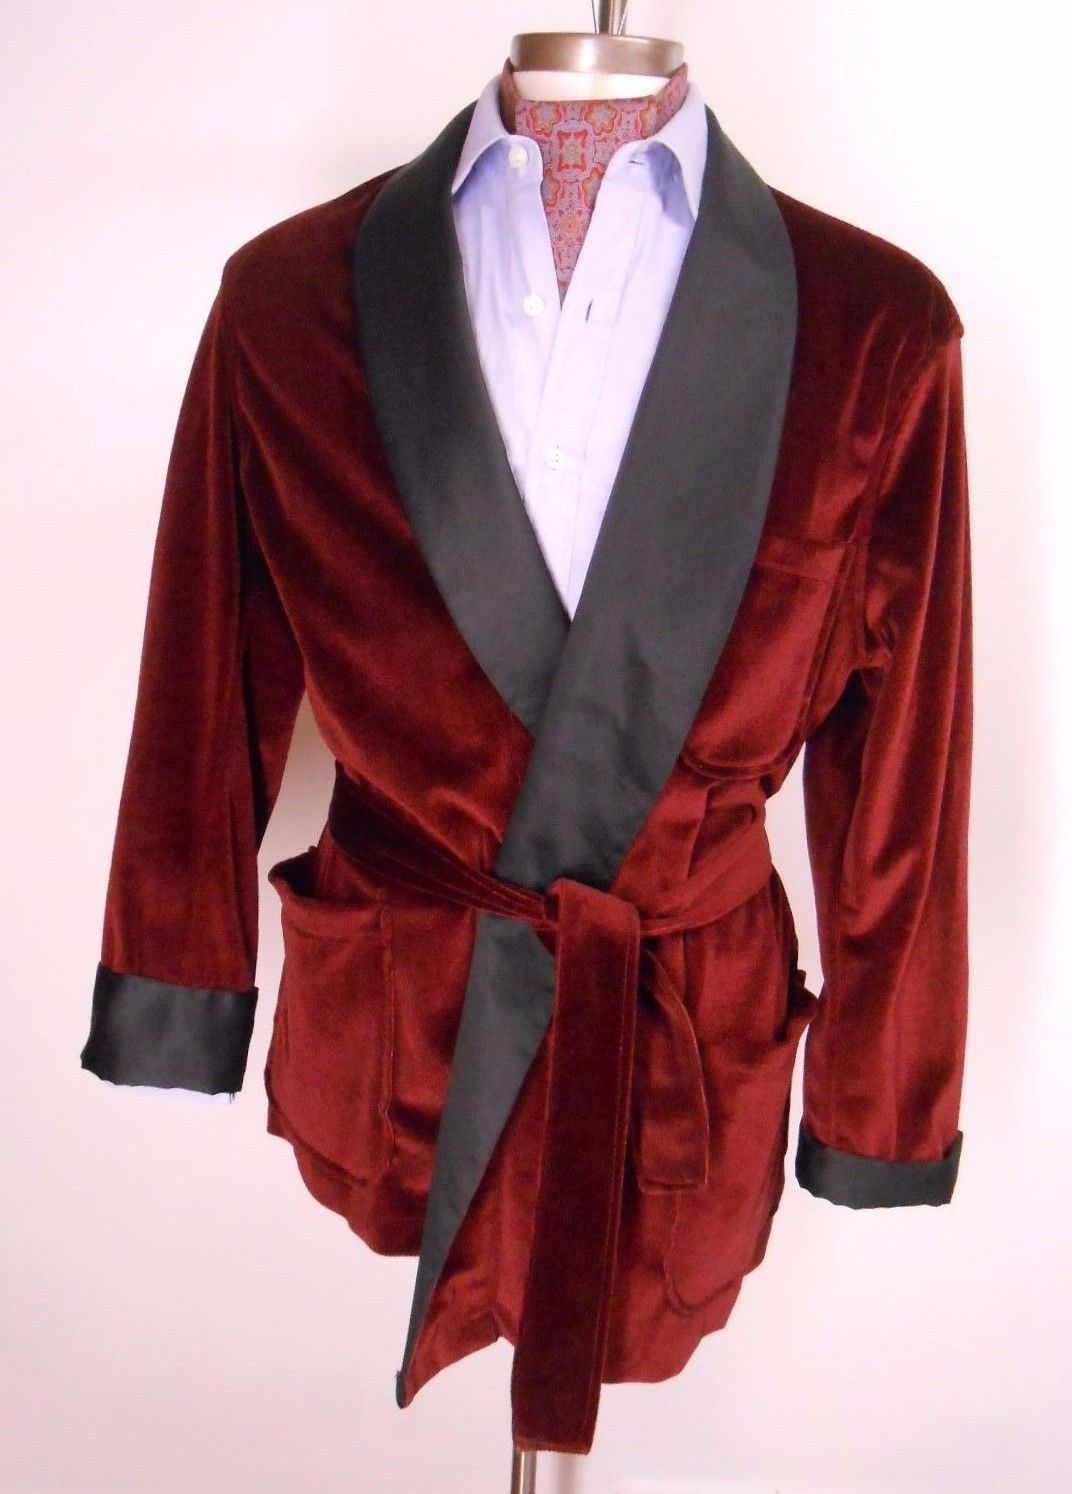 Red tuxedos are a rising trend in mens fashion, red is more common at special occasions today than ever before. We offer a wide online selection red tuxedos and tuxedo jackets. This Bright Red tuxedo jacket is one of our customers' favorites/5(89).